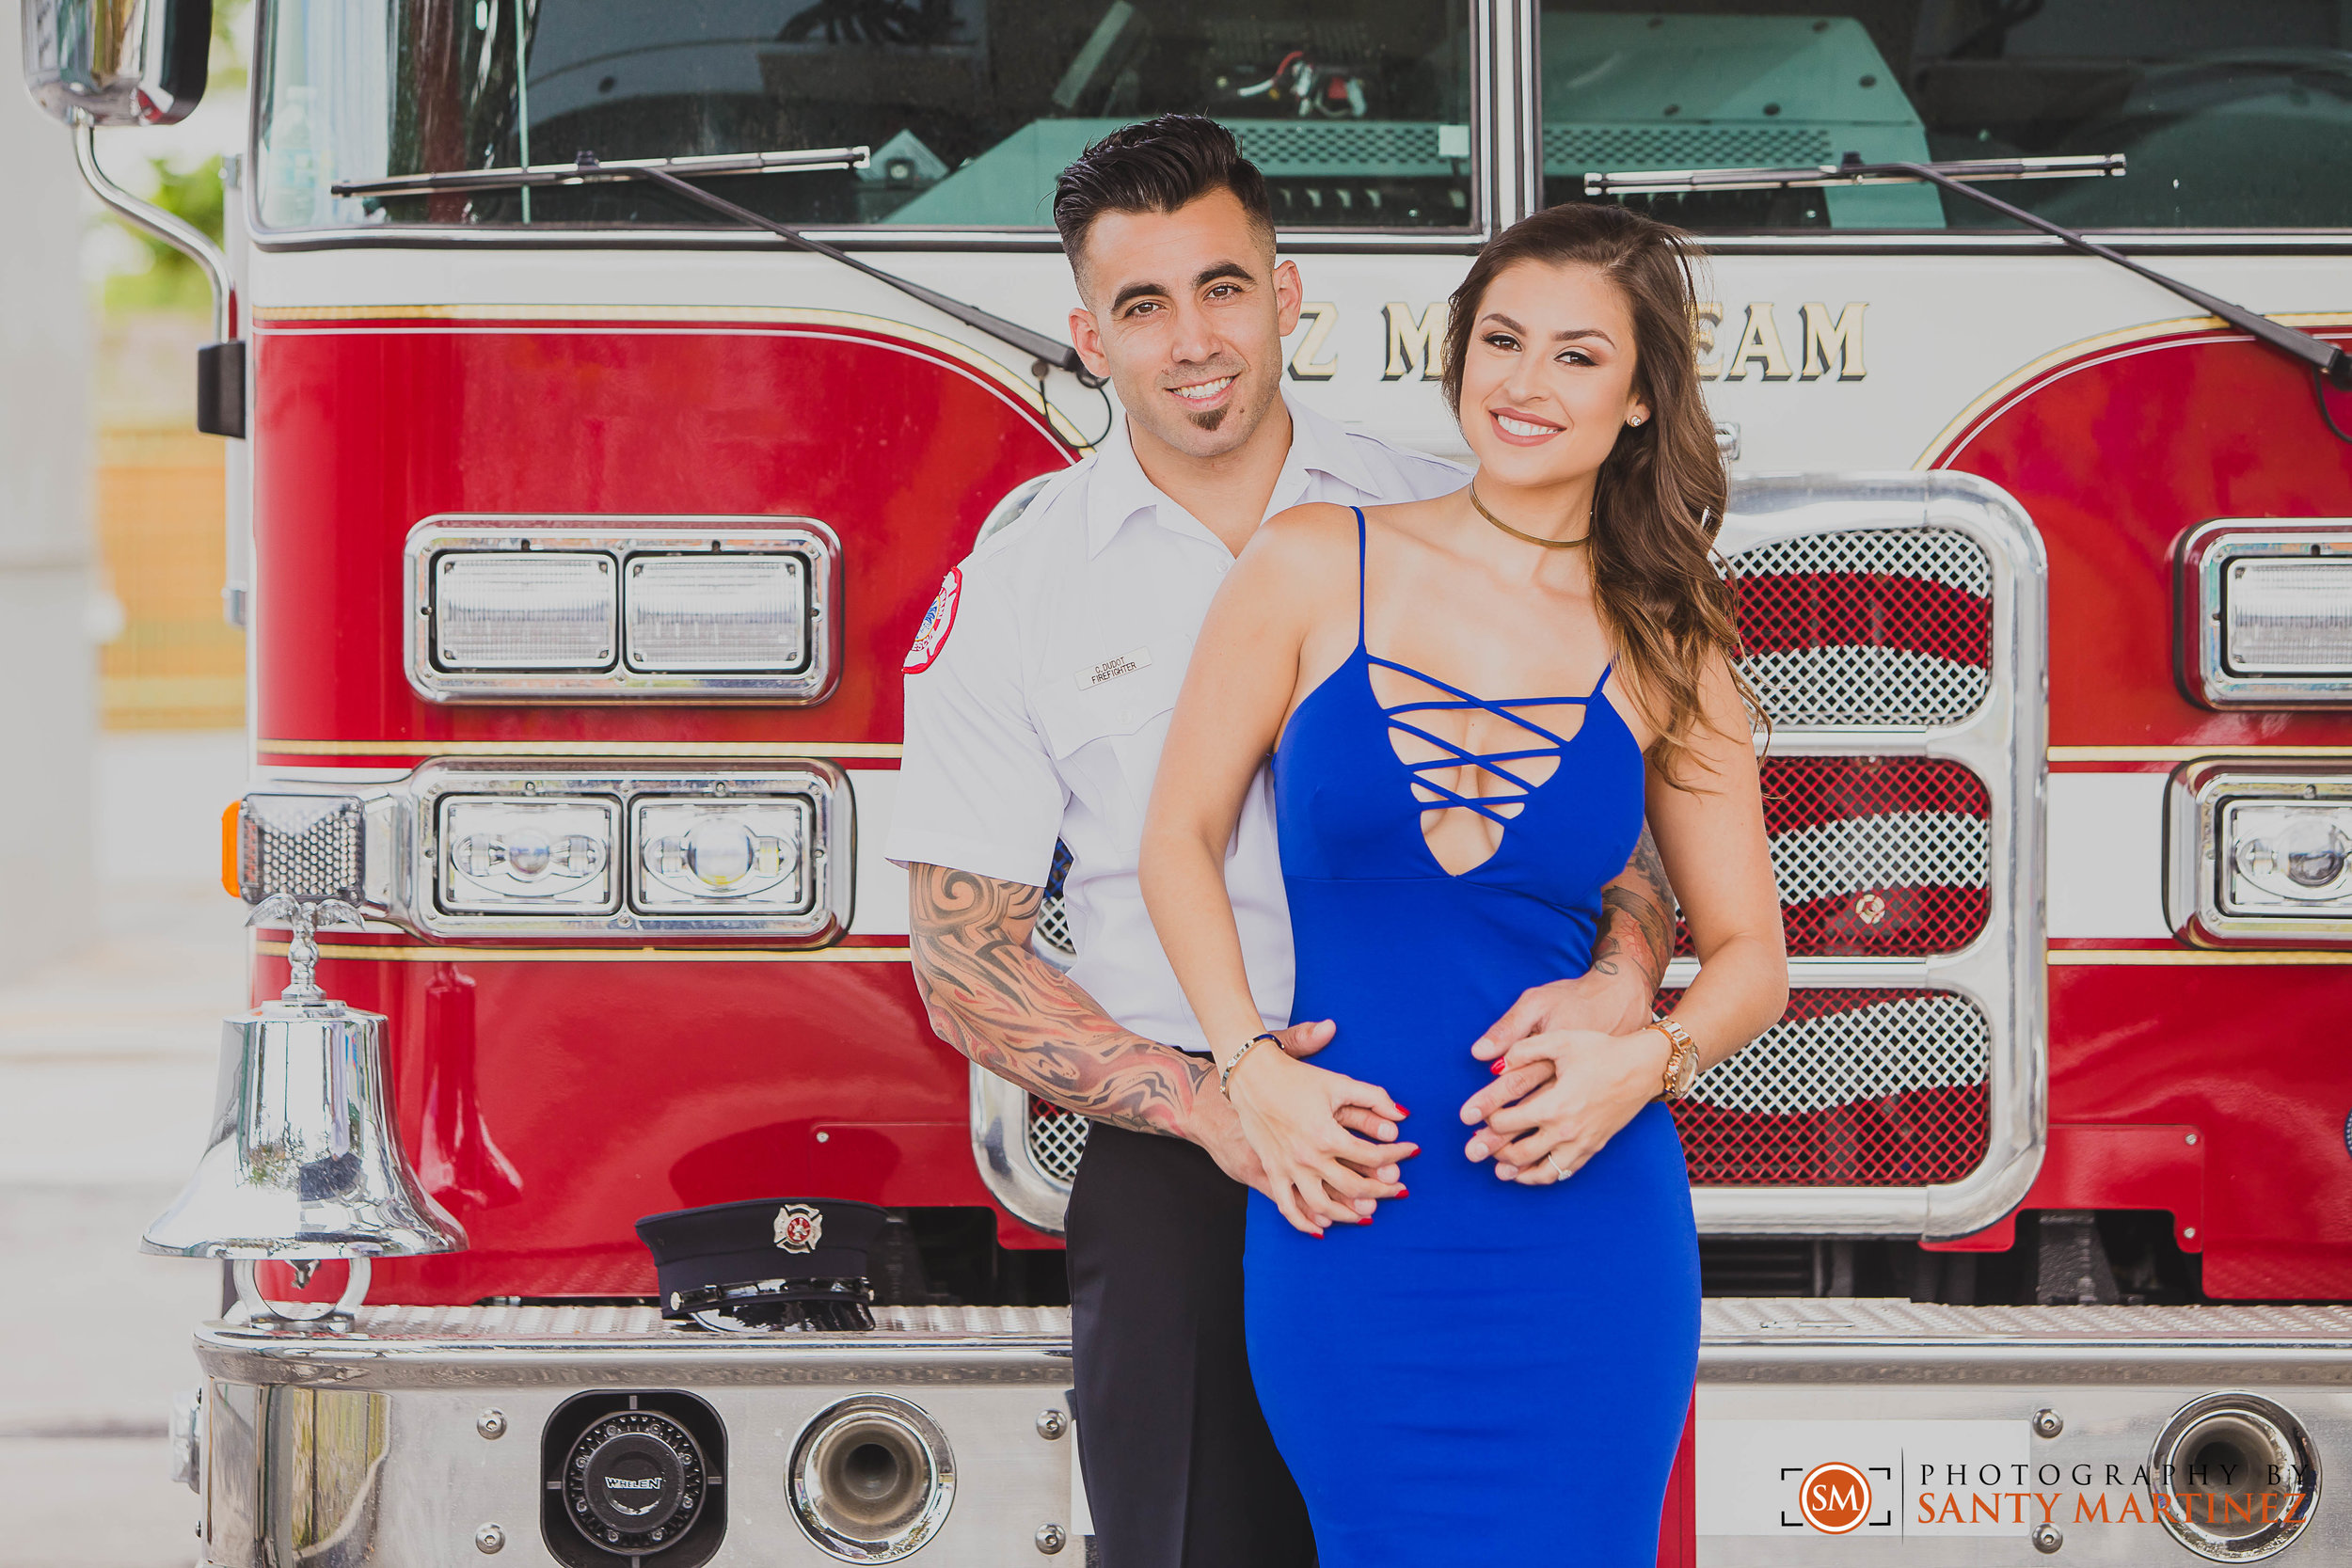 Miami Firefighter Engagement Session - Photography by Santy Martinez.jpg